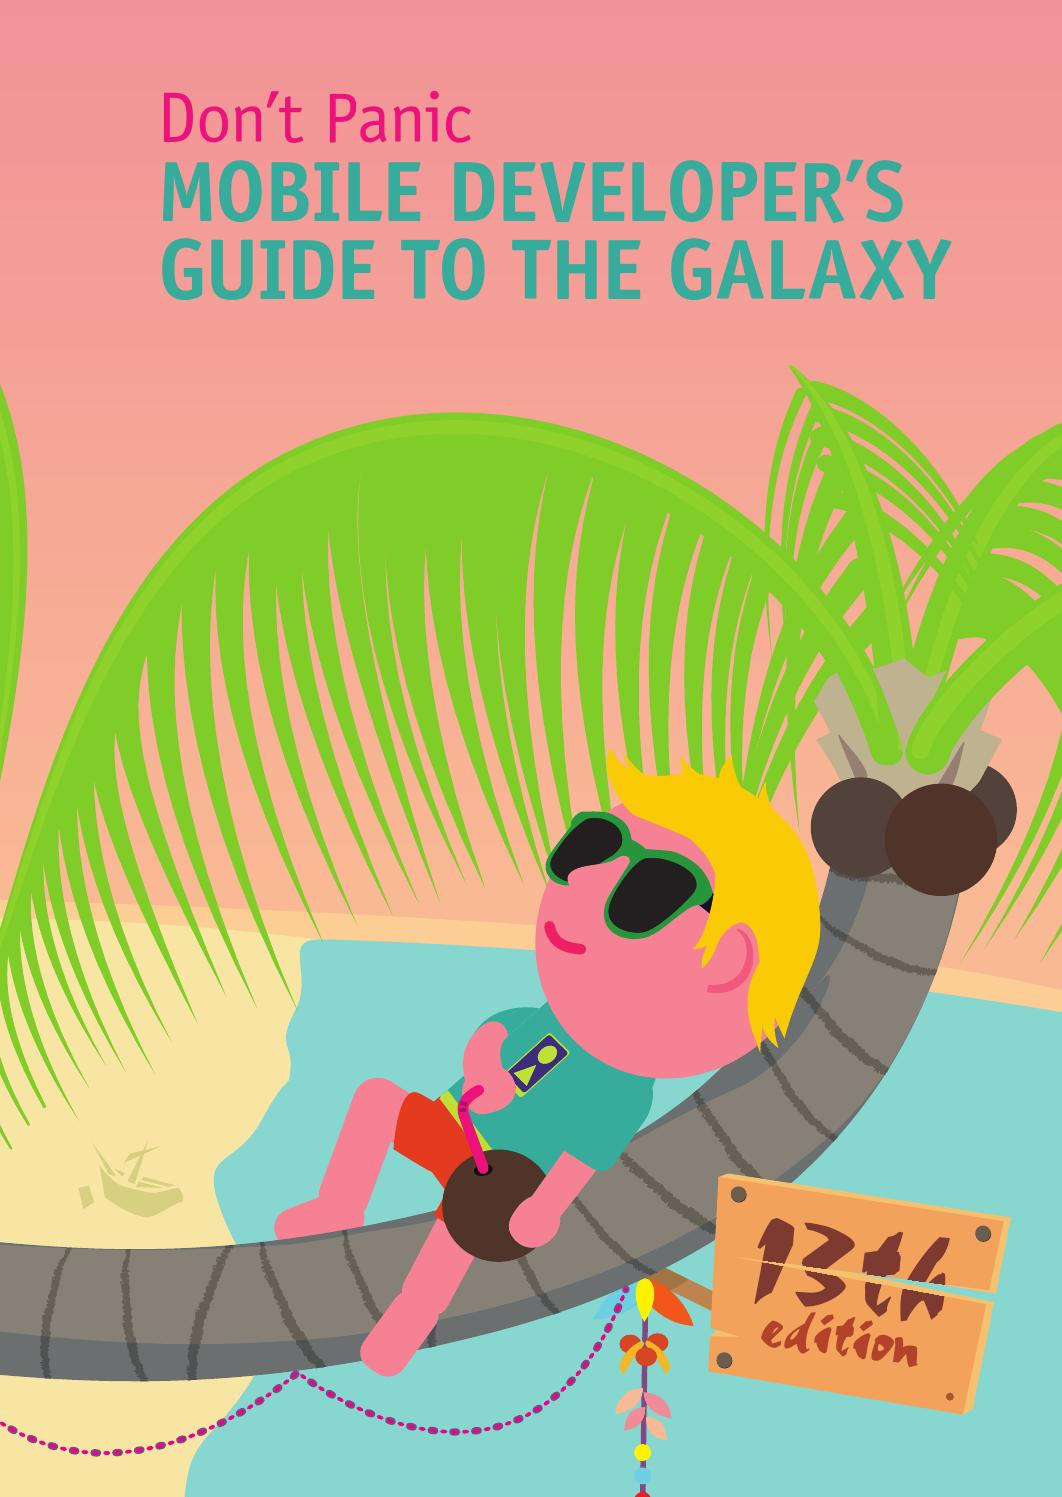 Mobile Developer's Guide To The Galaxy, 13th edition by